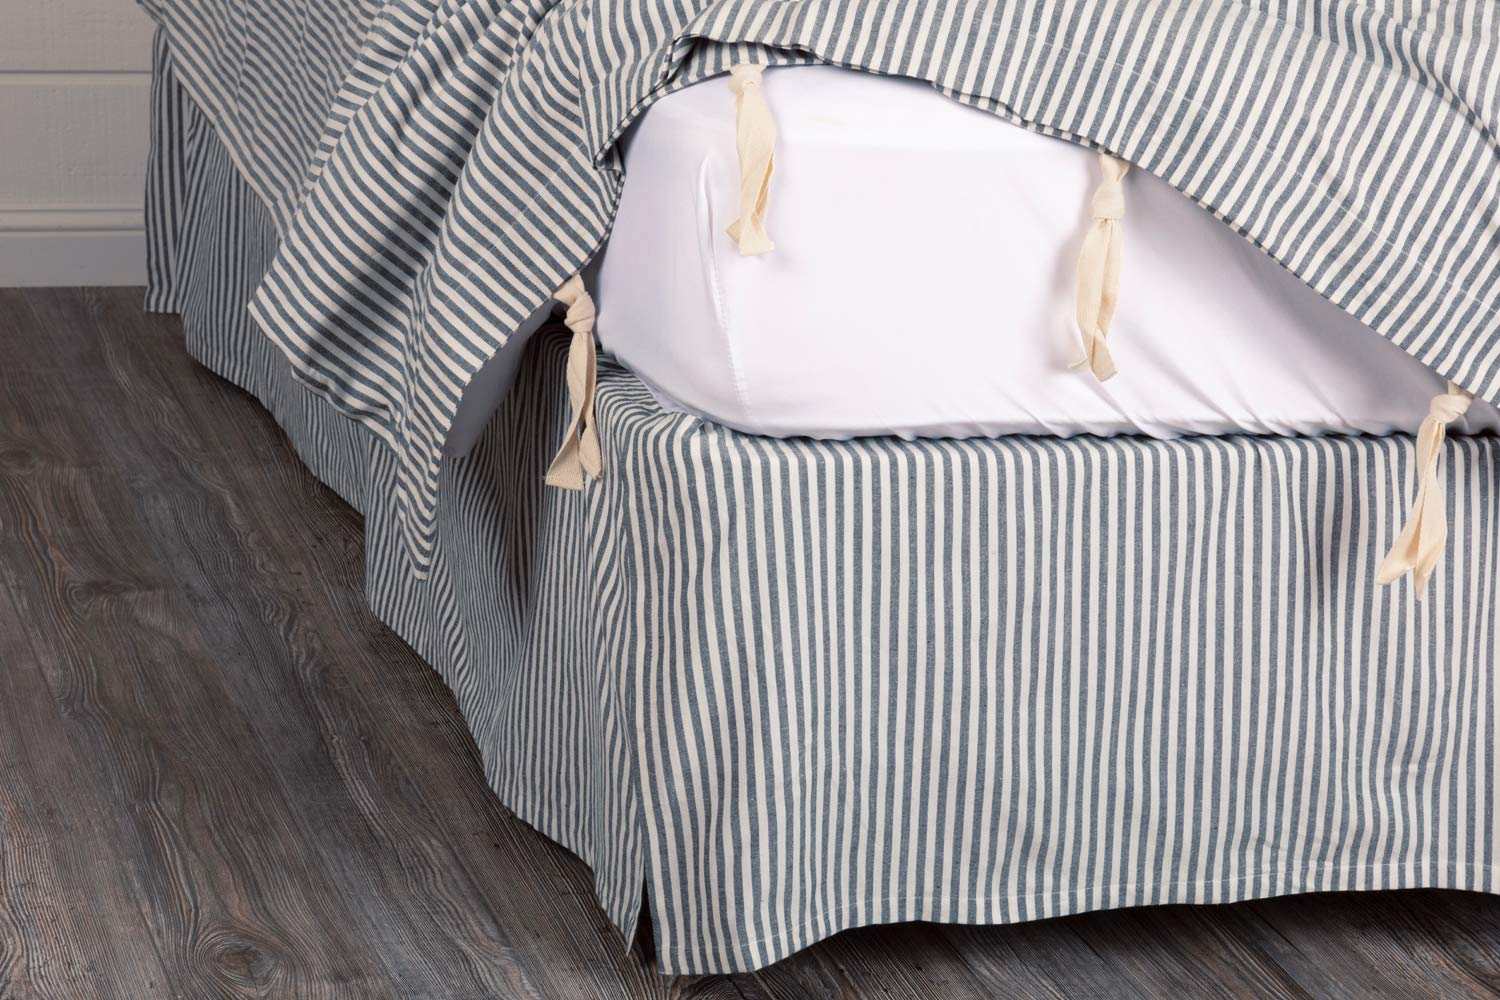 Piper Classics Farmhouse Ticking Blue King Bed Skirt, 78x80 w/ 16'' Drop, Tailored Dust Ruffle by Piper Classics (Image #2)